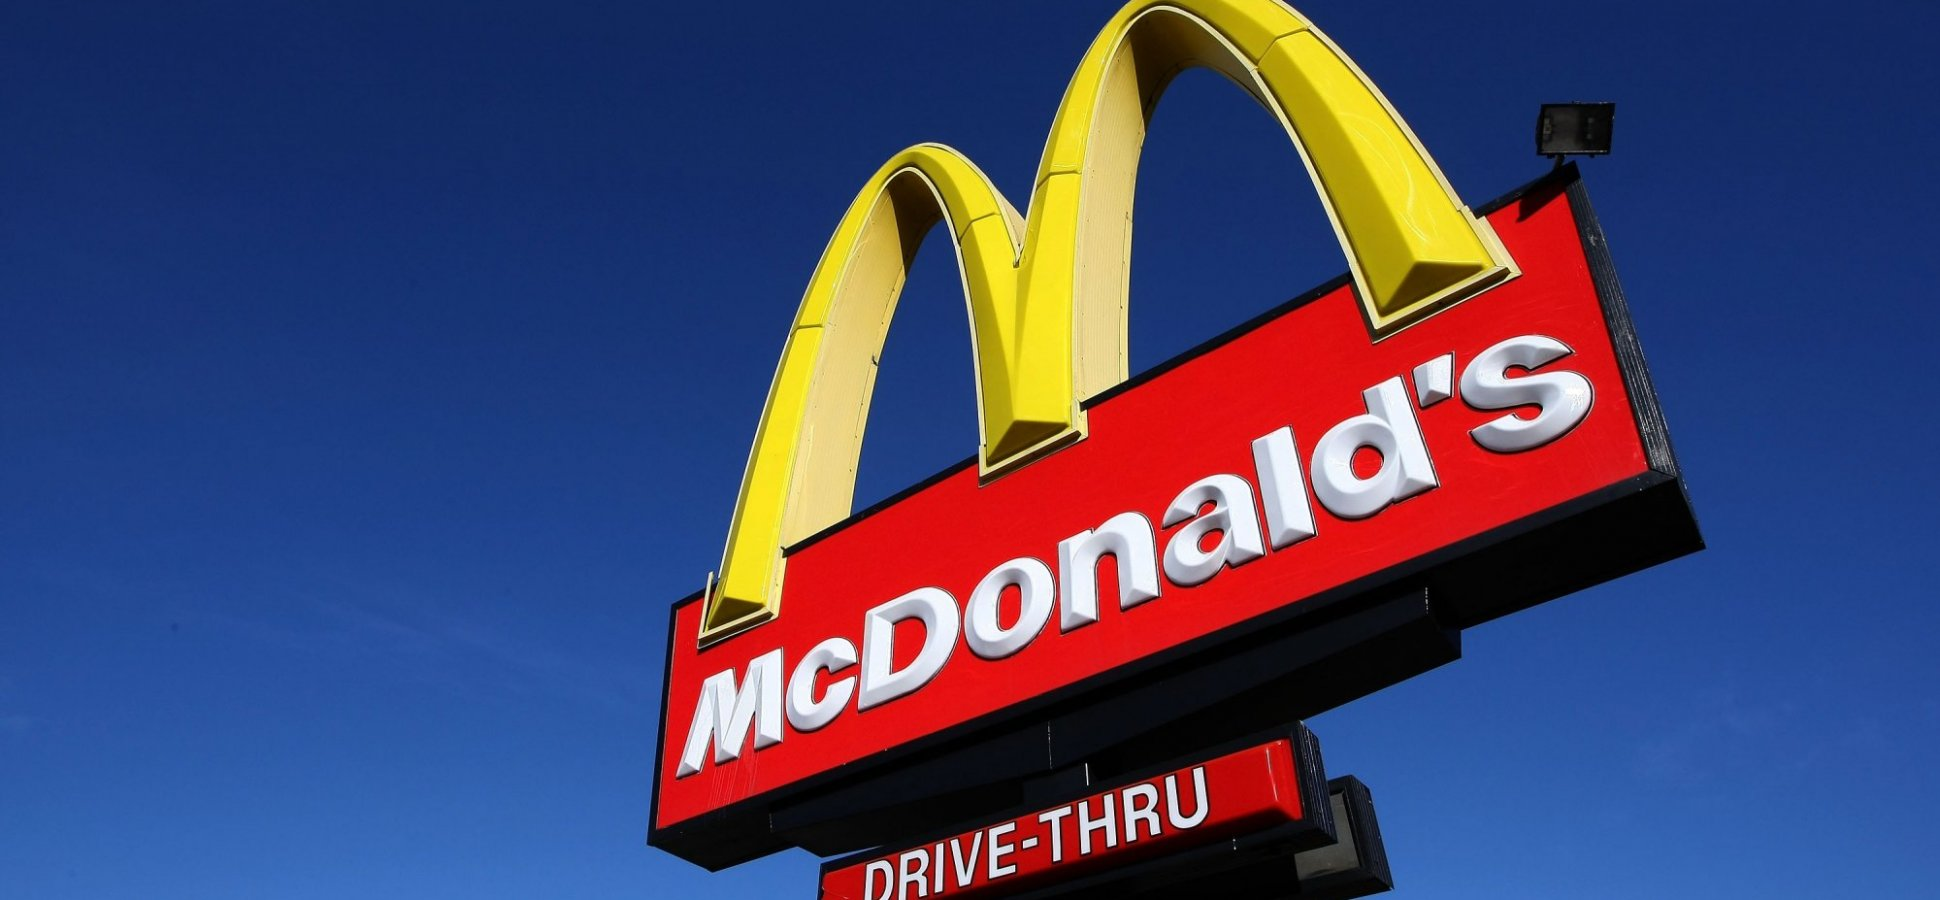 McDonald's Just Made a Truly Stunning Change to Its Menu. (There's Only 1 Little Problem)